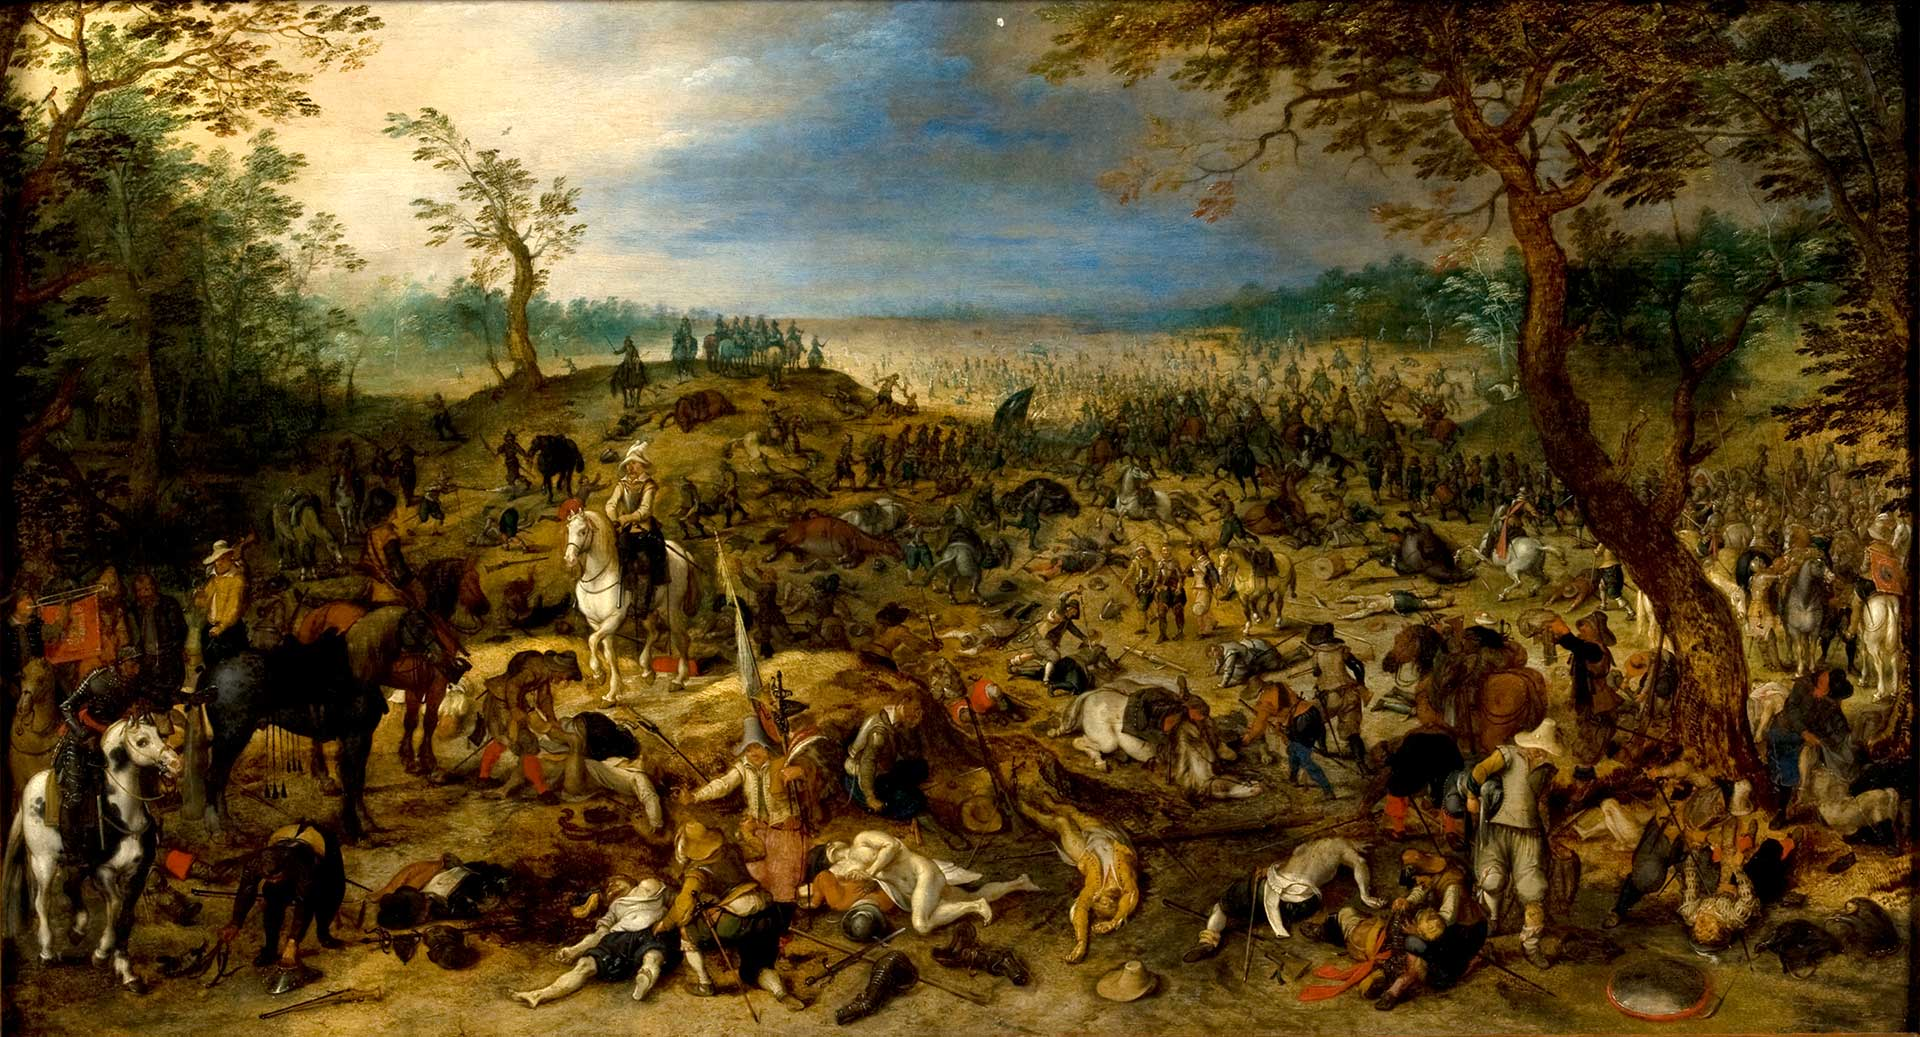 Battle Scene by Sebastiaen Vrancx. Image via Wikimedia Commons.